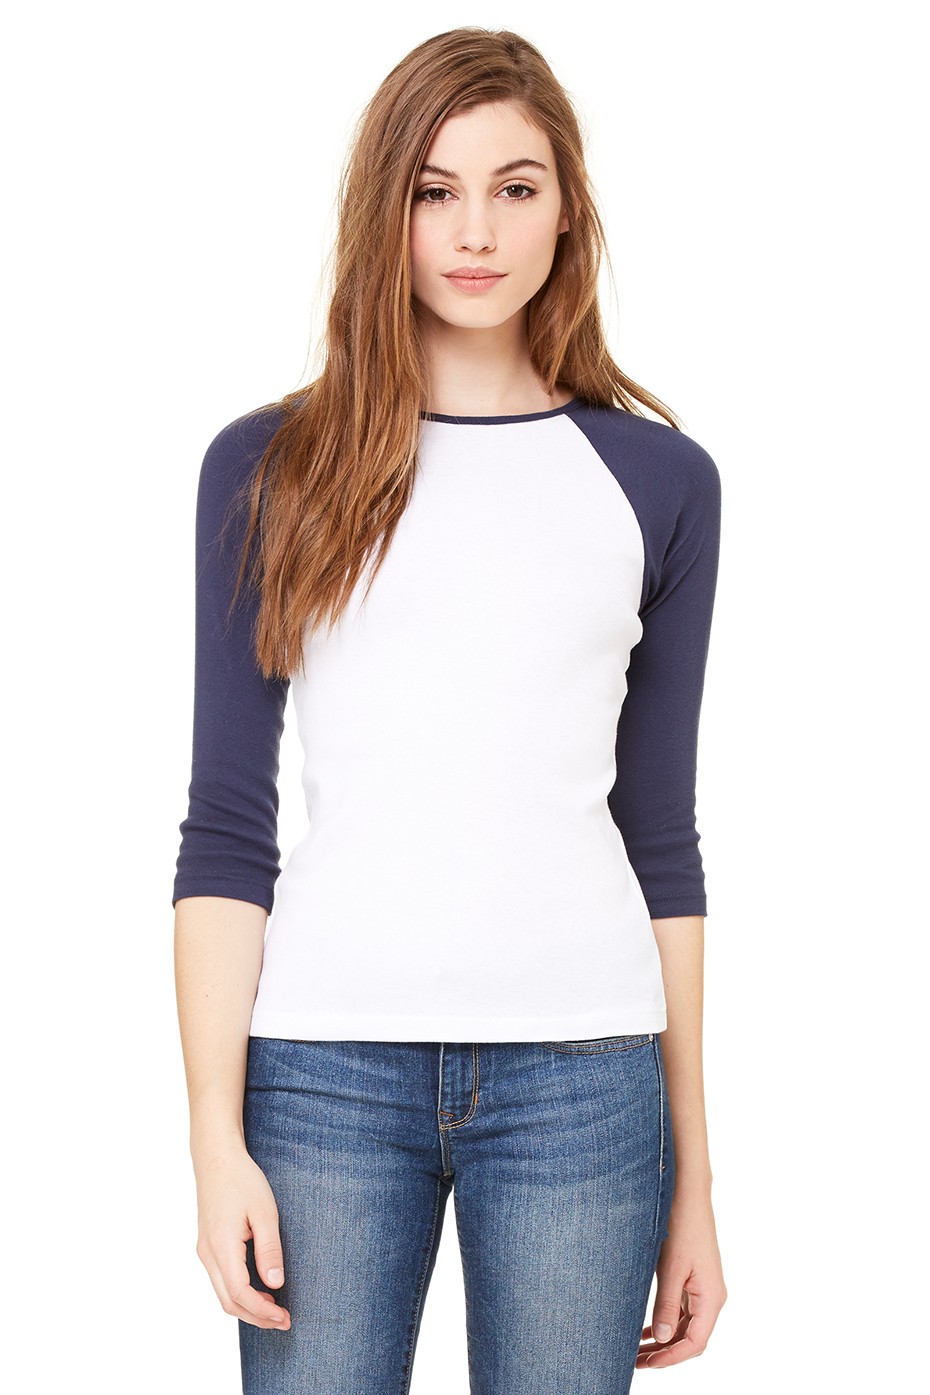 Wholesale Shirts For Women